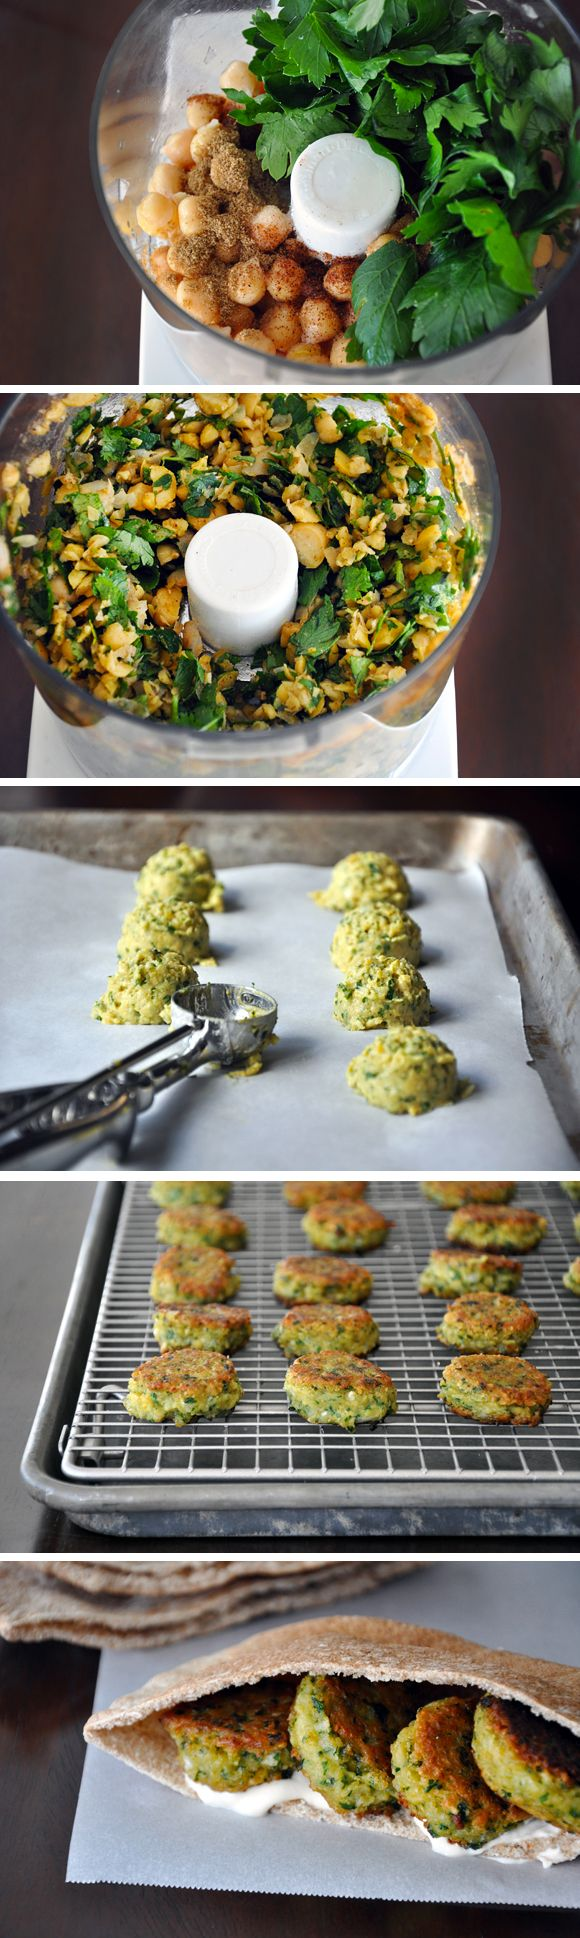 No Bake: Homemade Falafel with Tahini Sauce Recipe